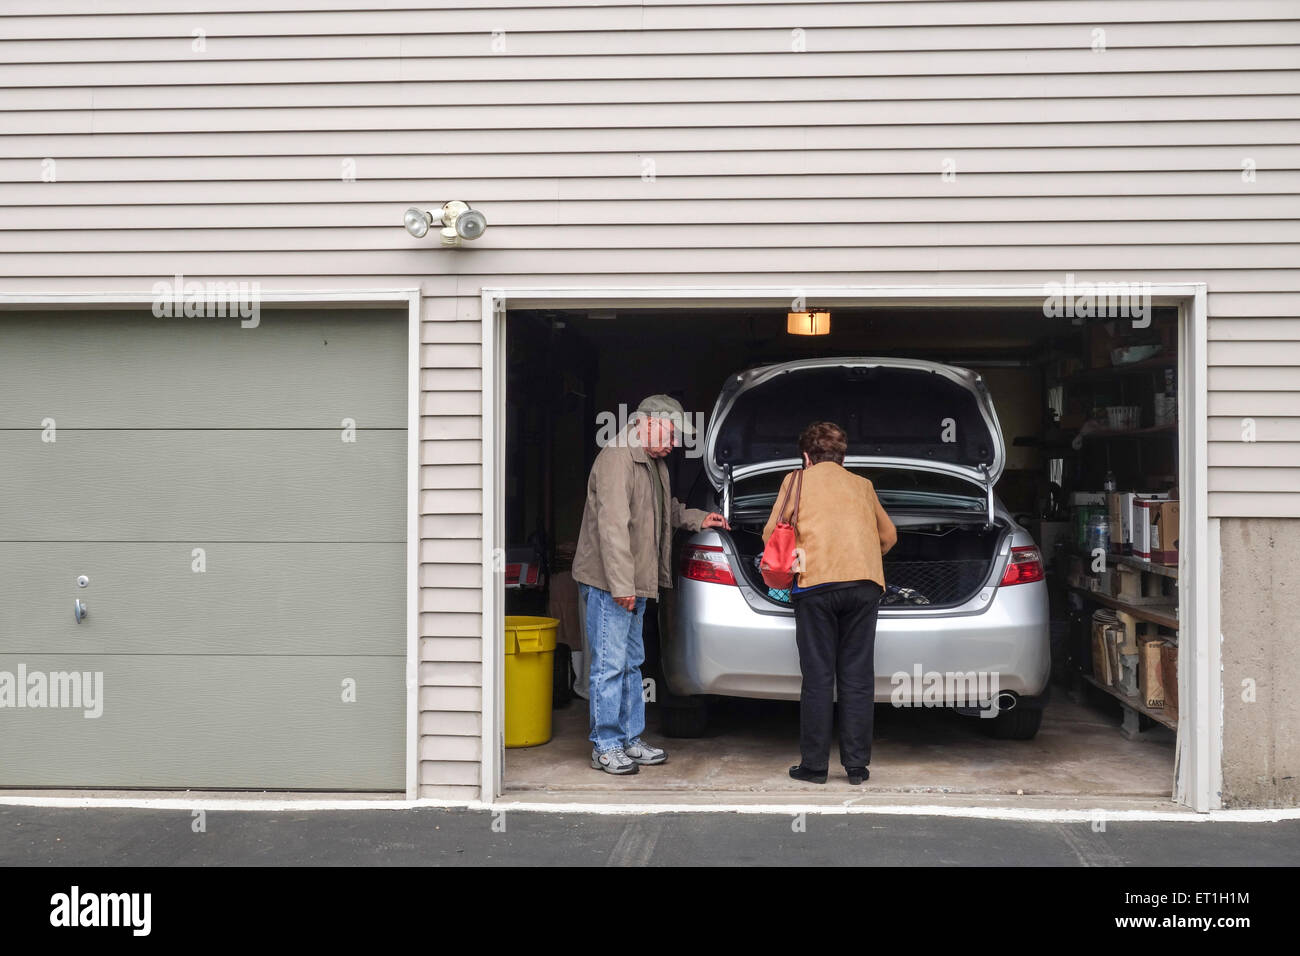 garage door inside. Senior Couple Leaving, Garage Door With Car Parked Inside, American Style Wooden House, USA. Inside P